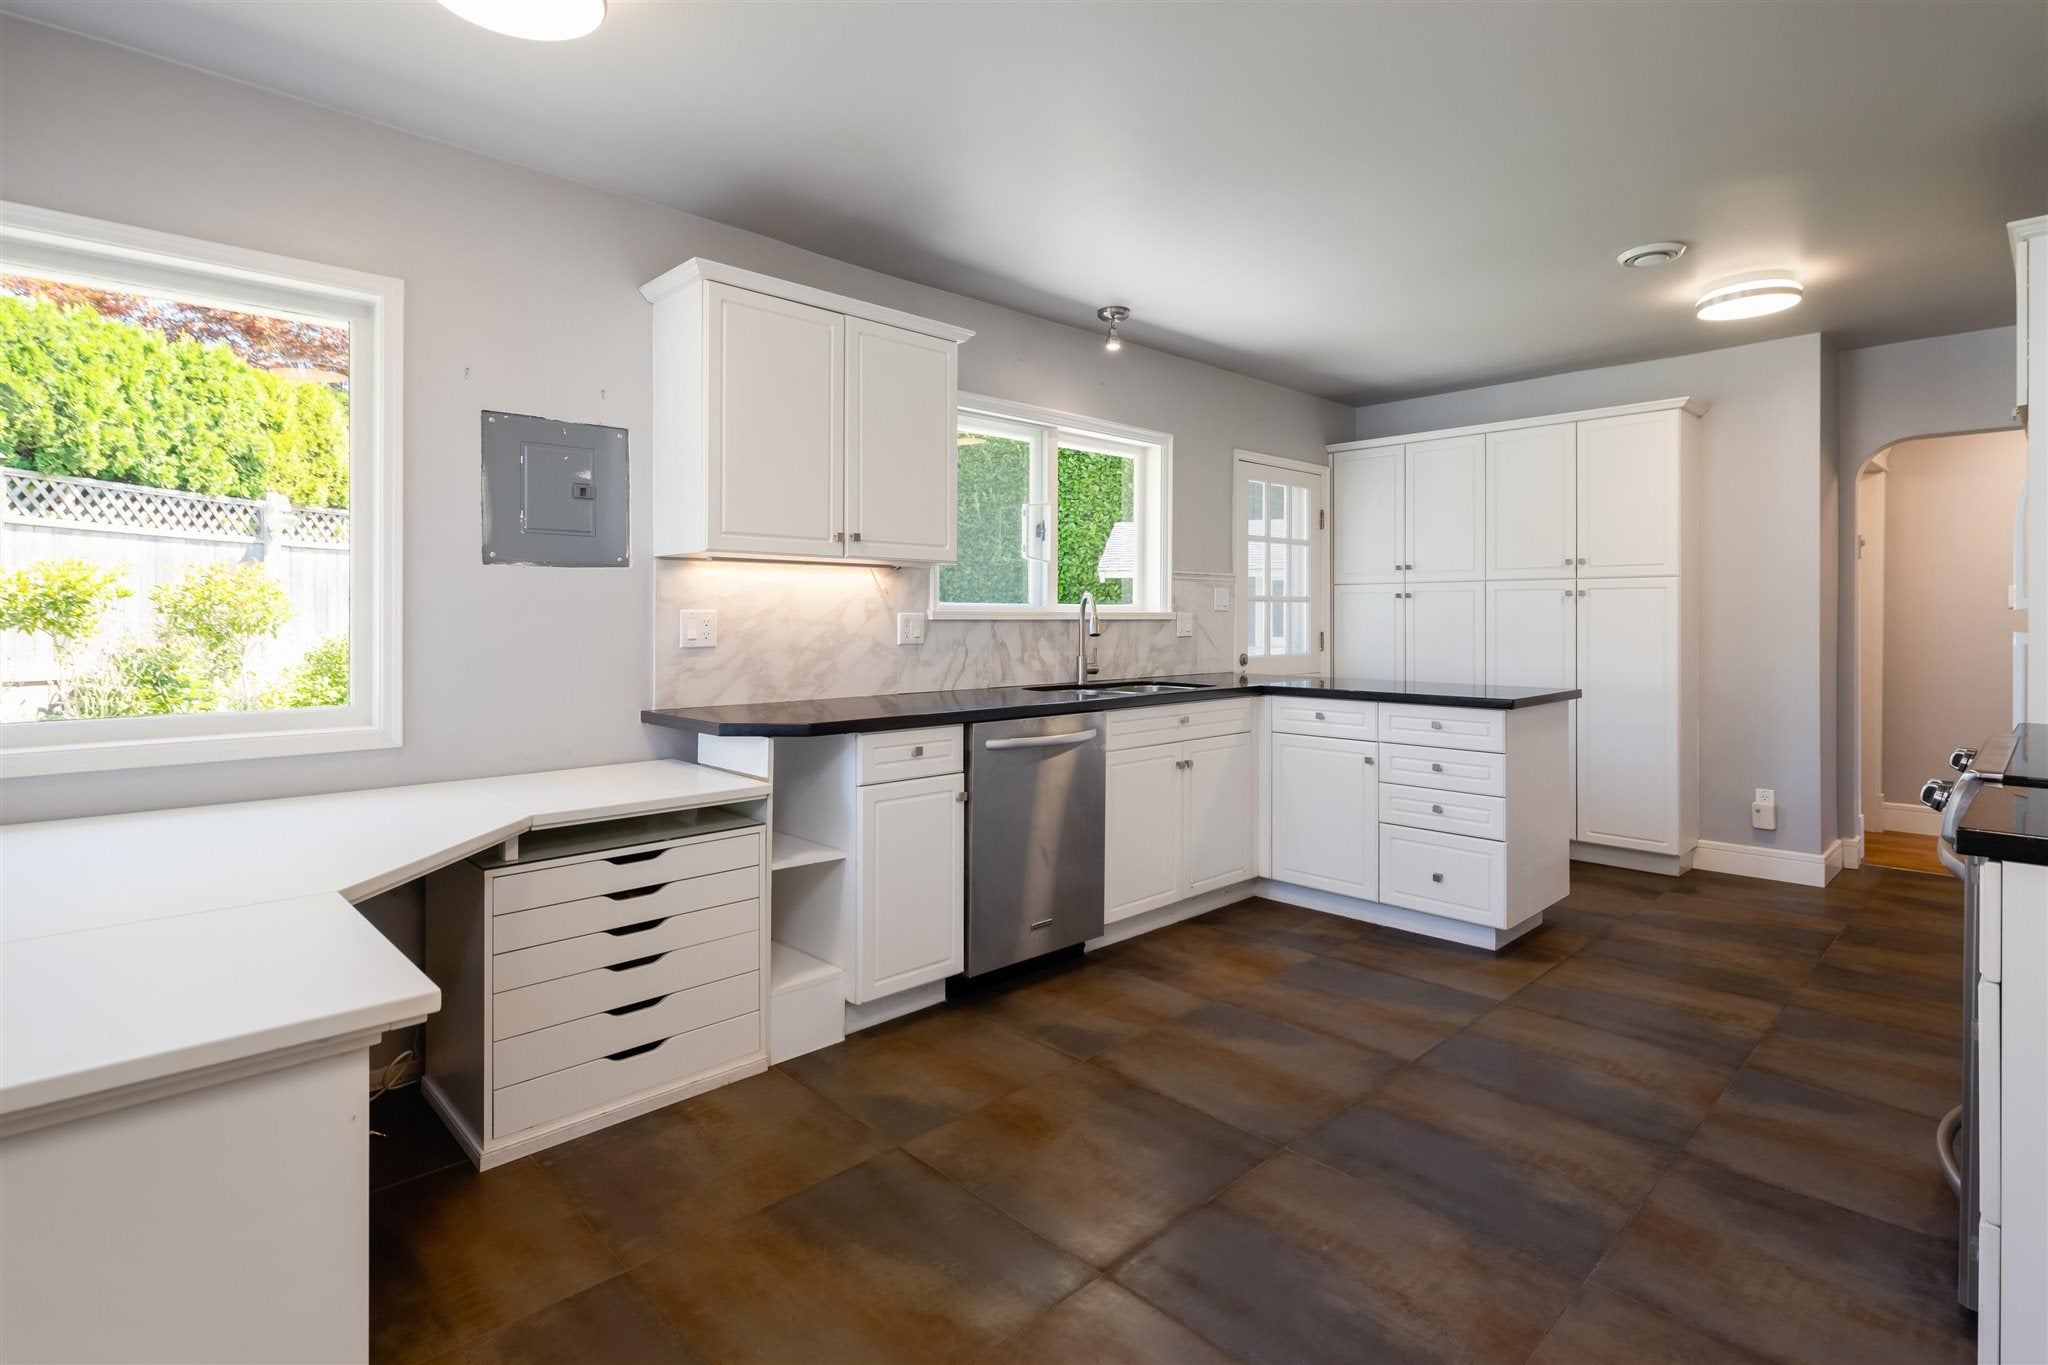 960 W QUEENS ROAD - Edgemont House/Single Family for sale, 2 Bedrooms (R2623308) - #9